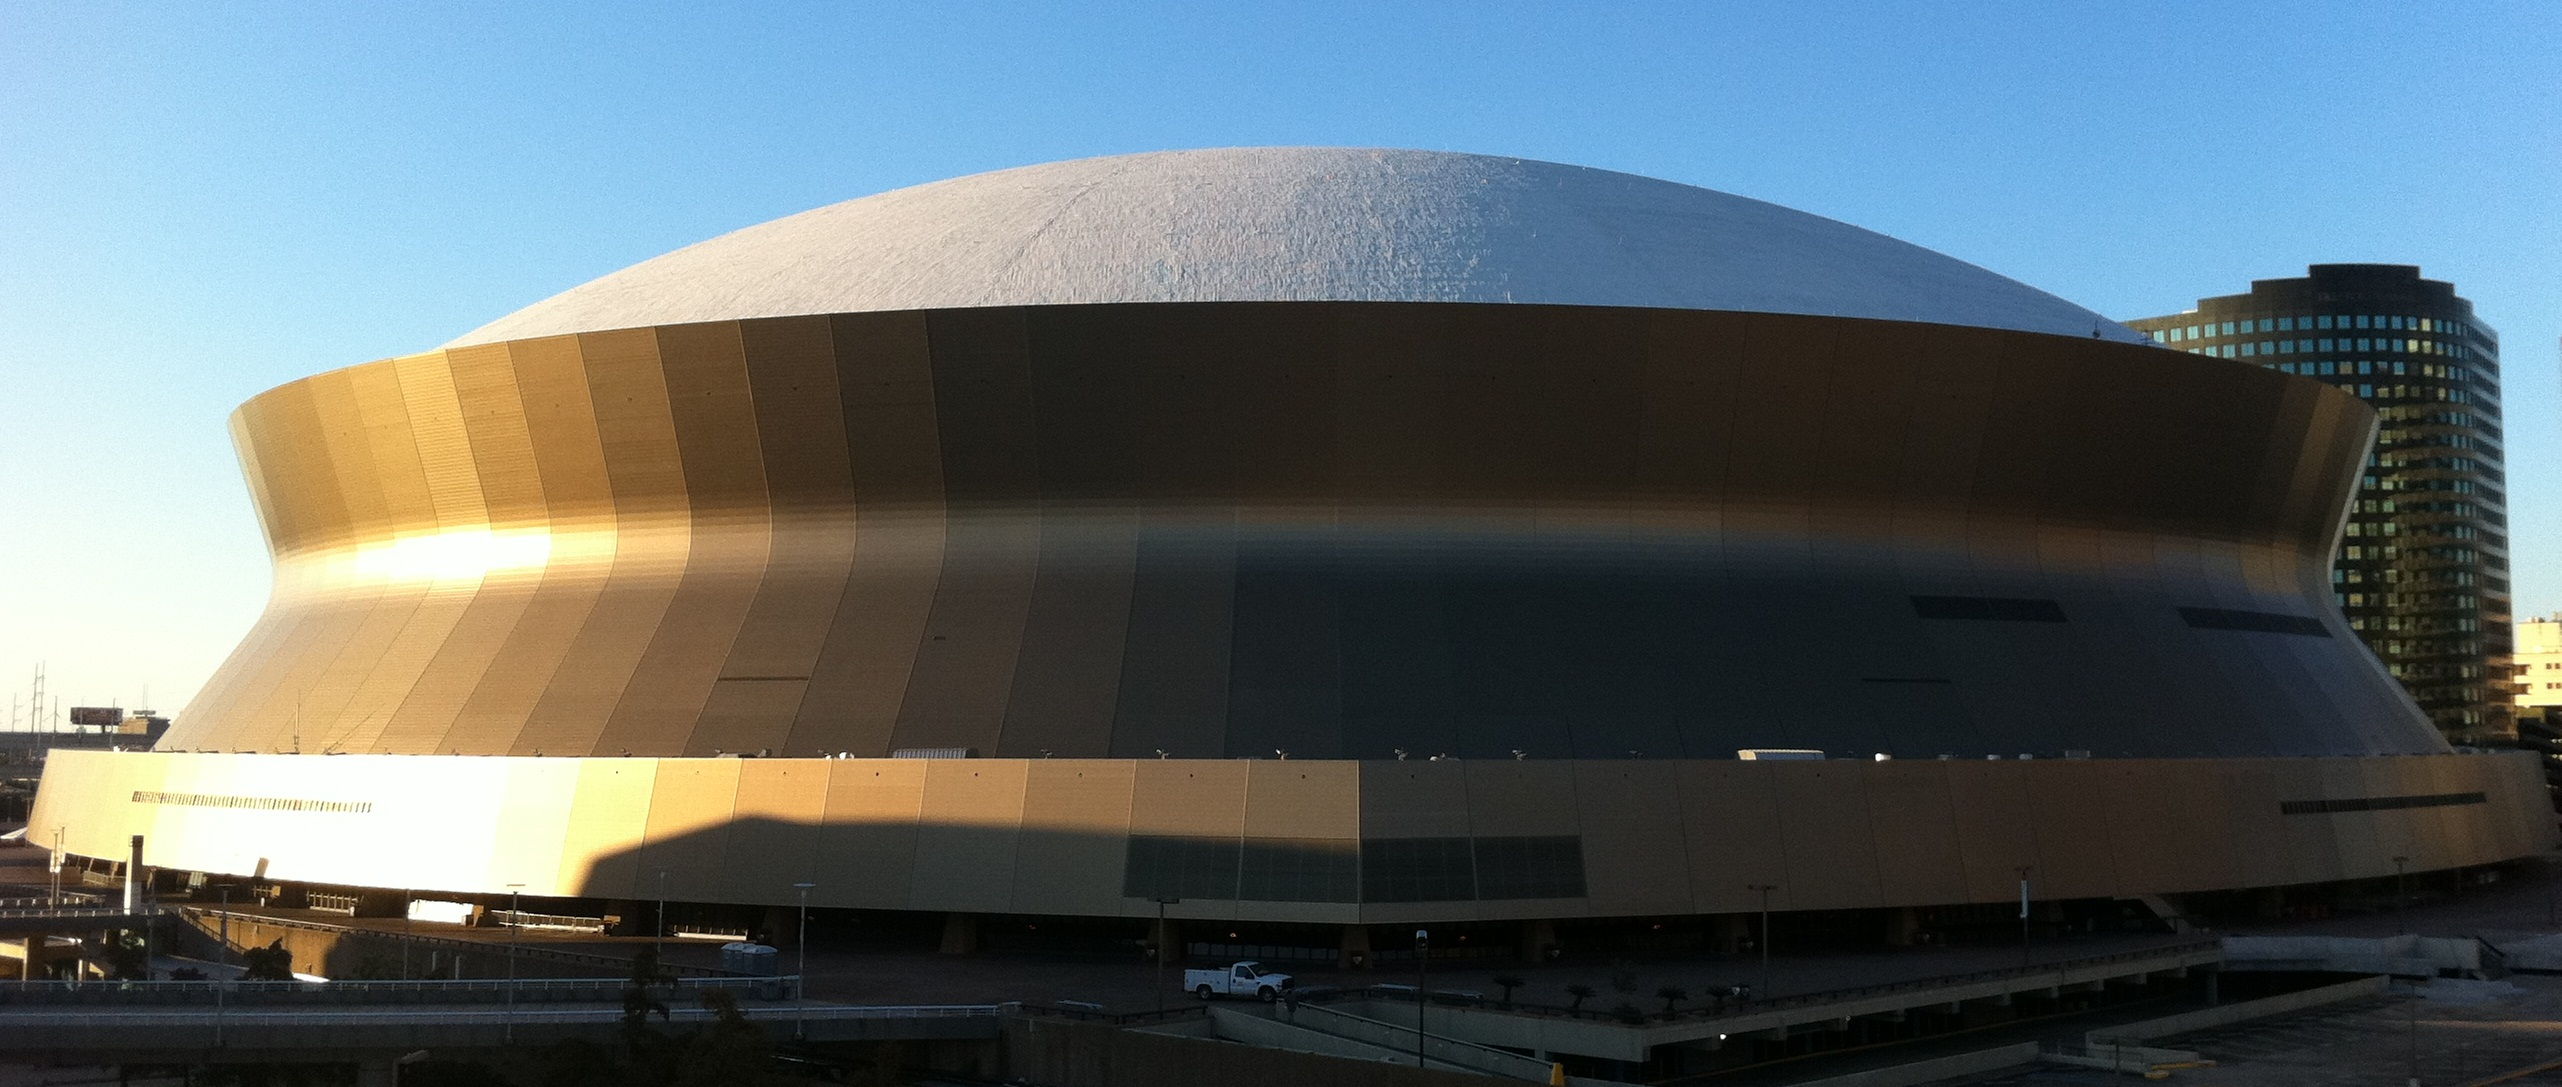 The super bowl s superdome stadiafile for Mercedes benz new orleans service